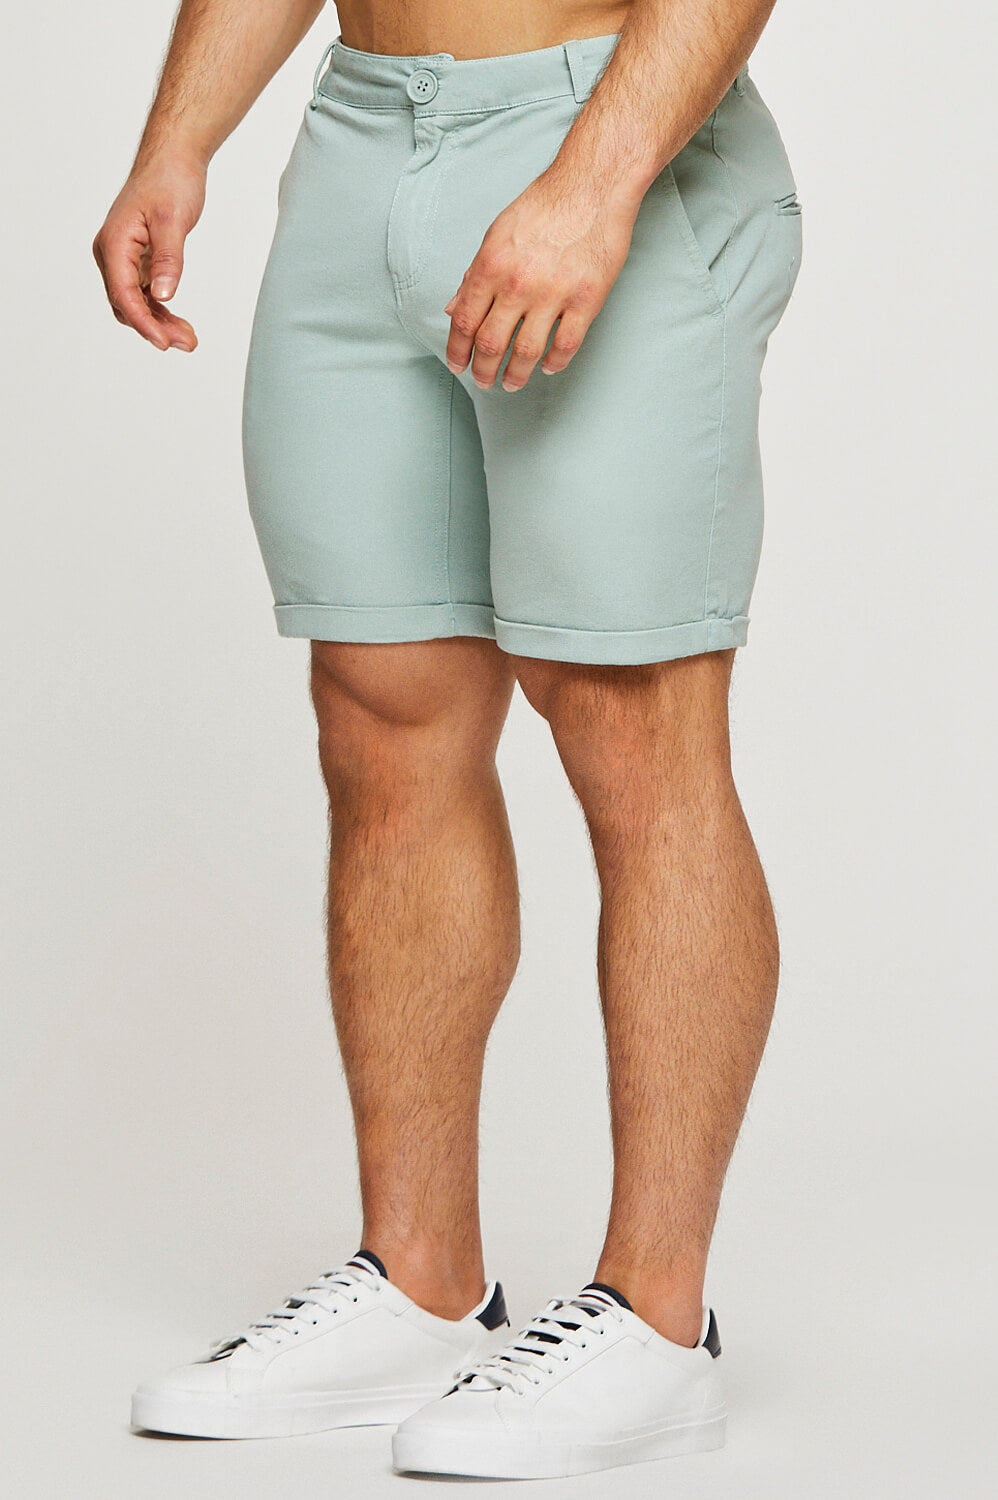 Essential Chino Shorts in Sage